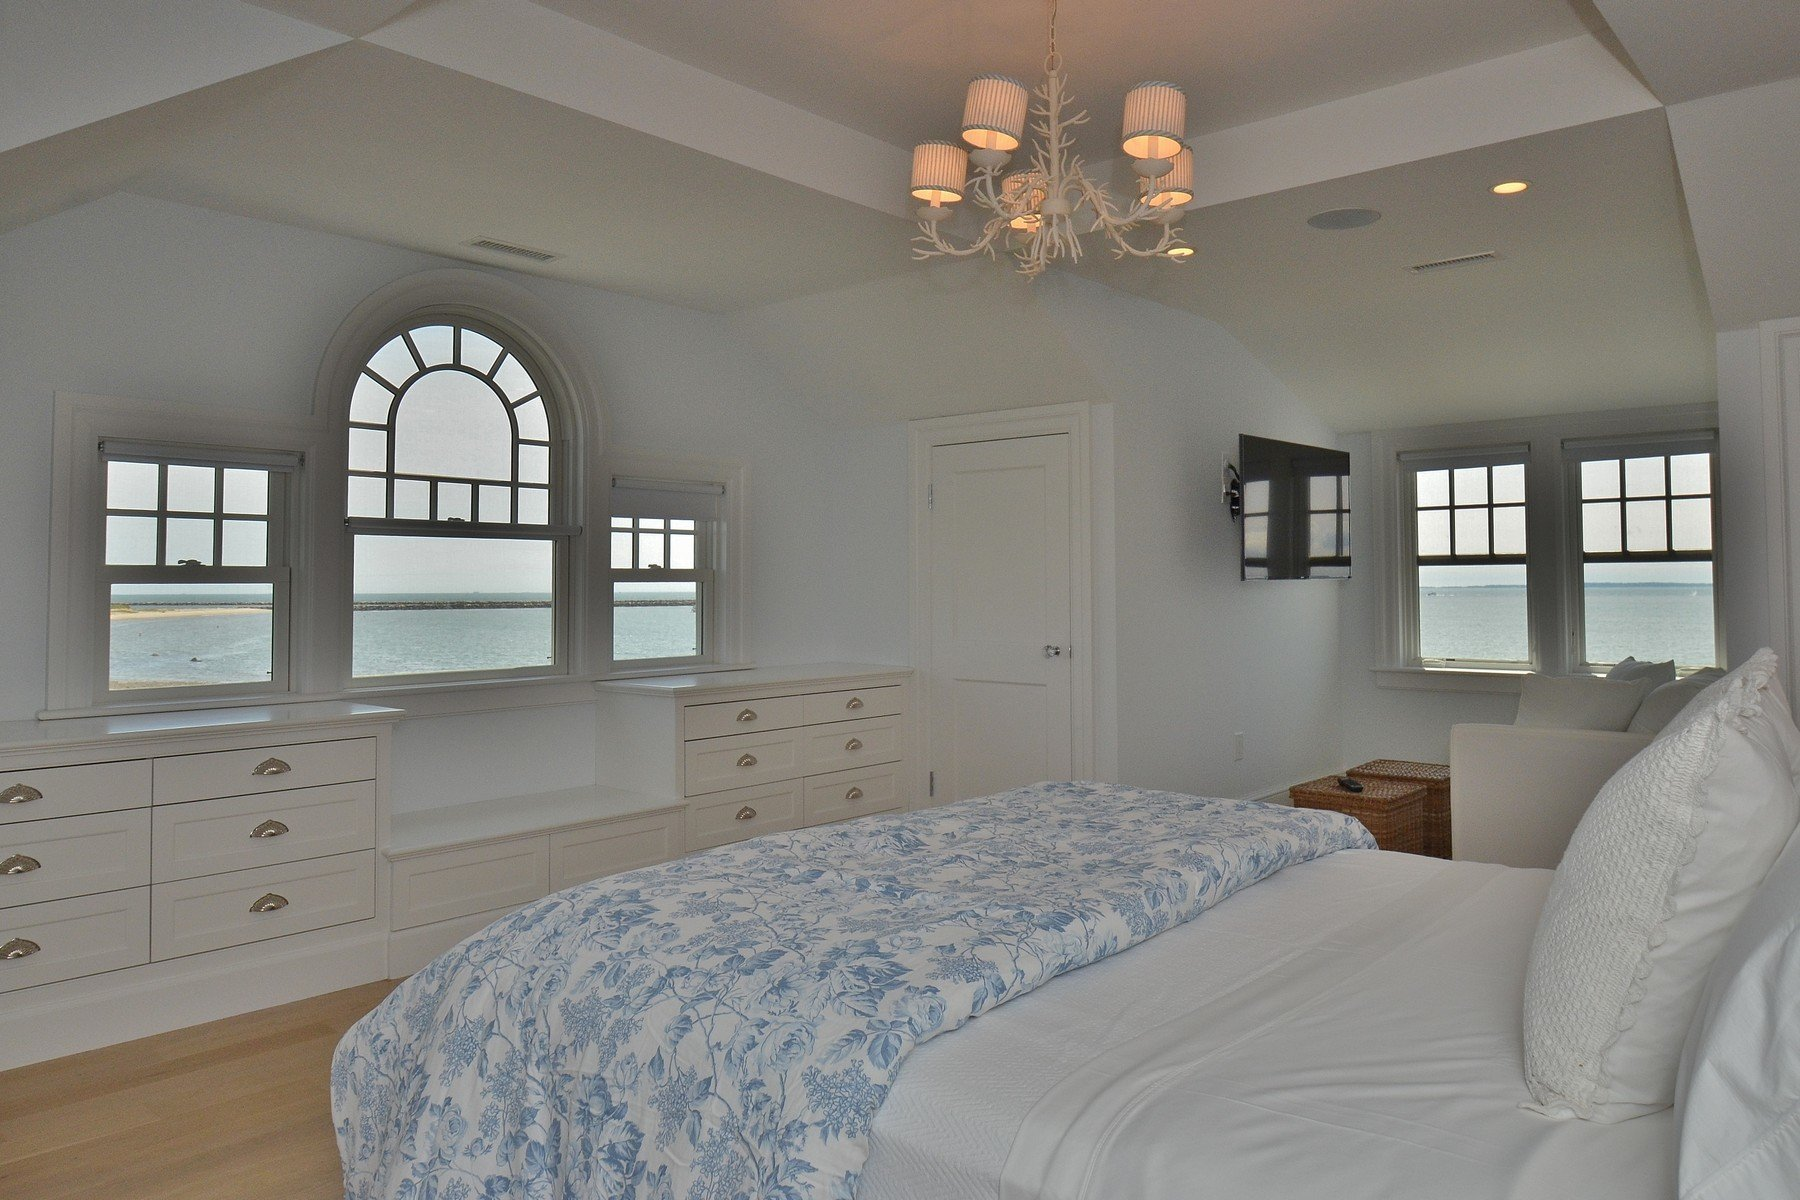 Beautiful bedroom with water views from the built in window seat.